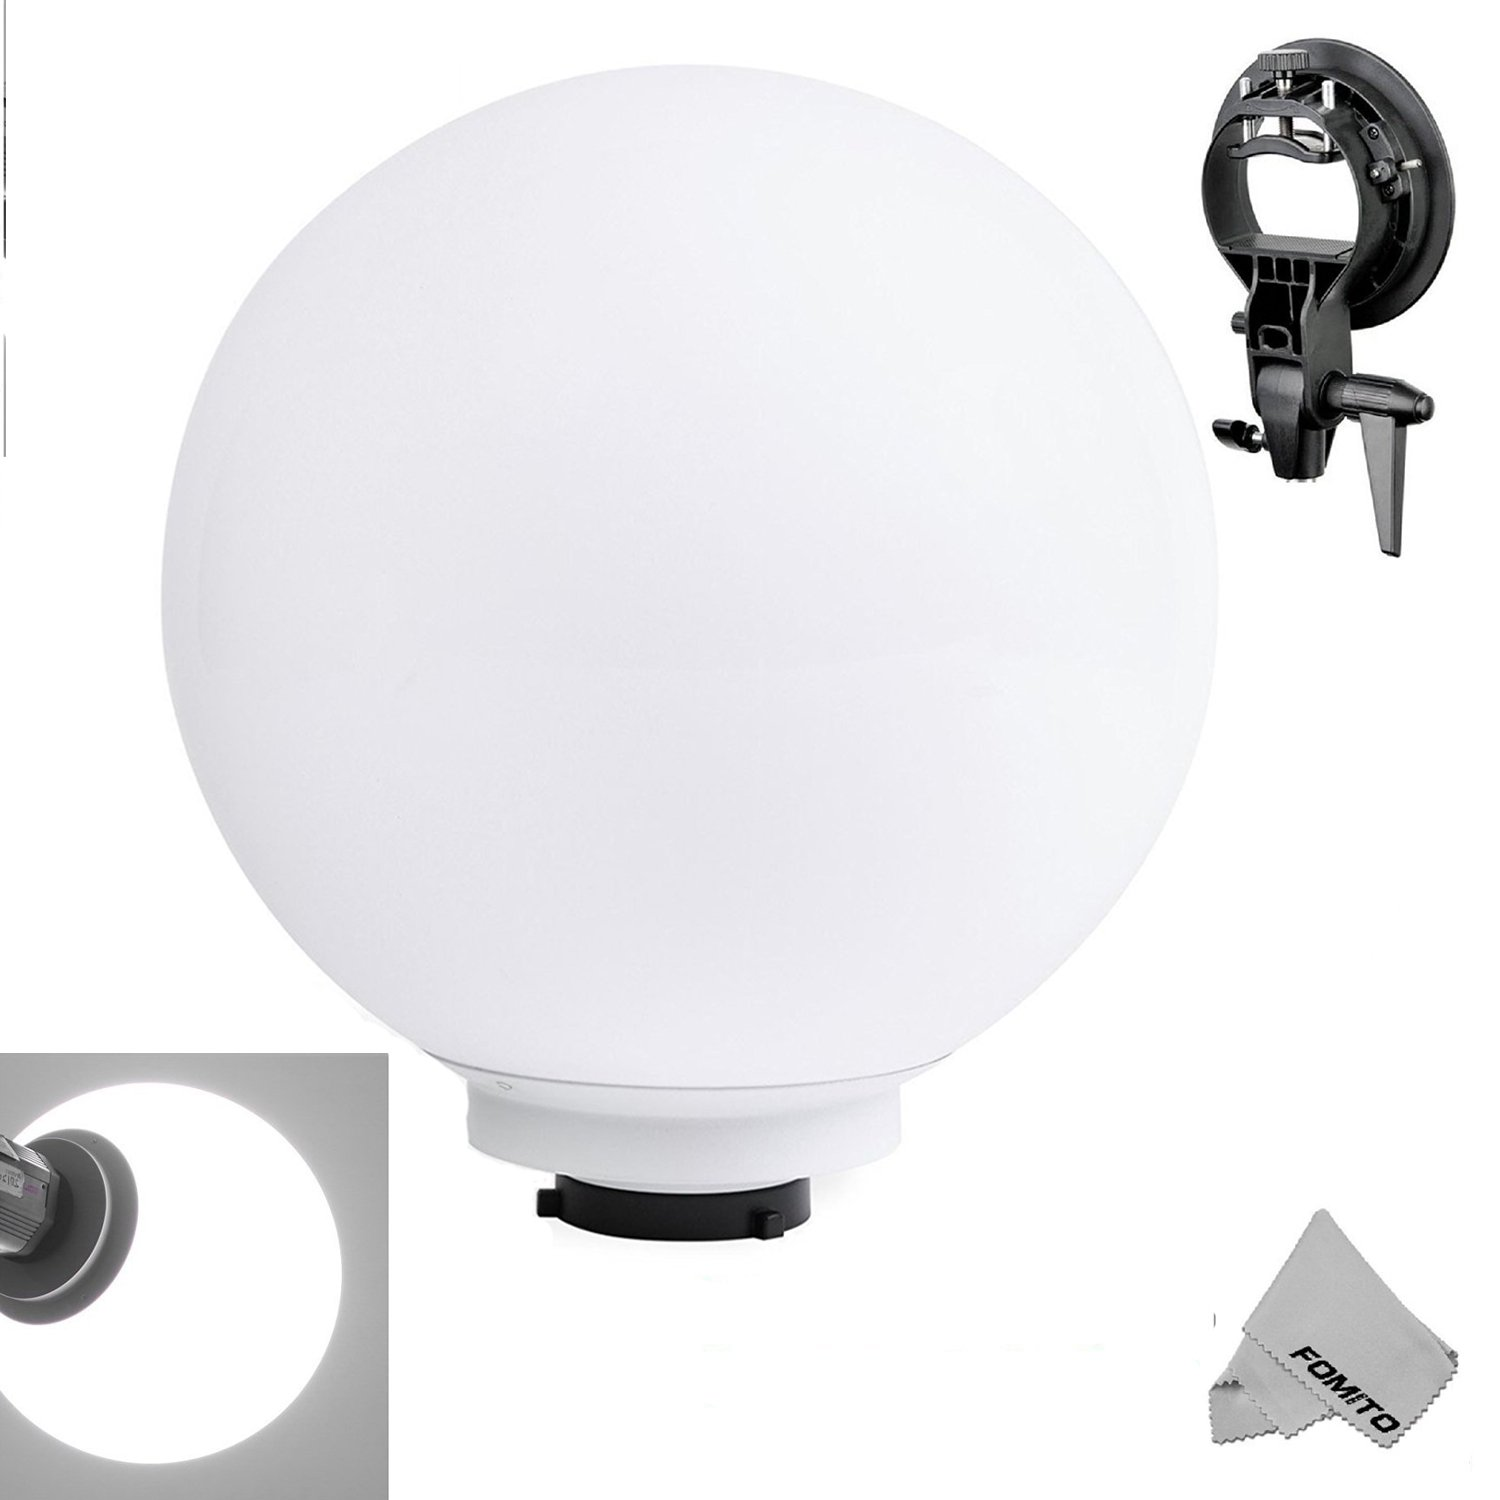 Fomito 40cm Spherical Flash Diffuser Ball with Bowens S-type Mount